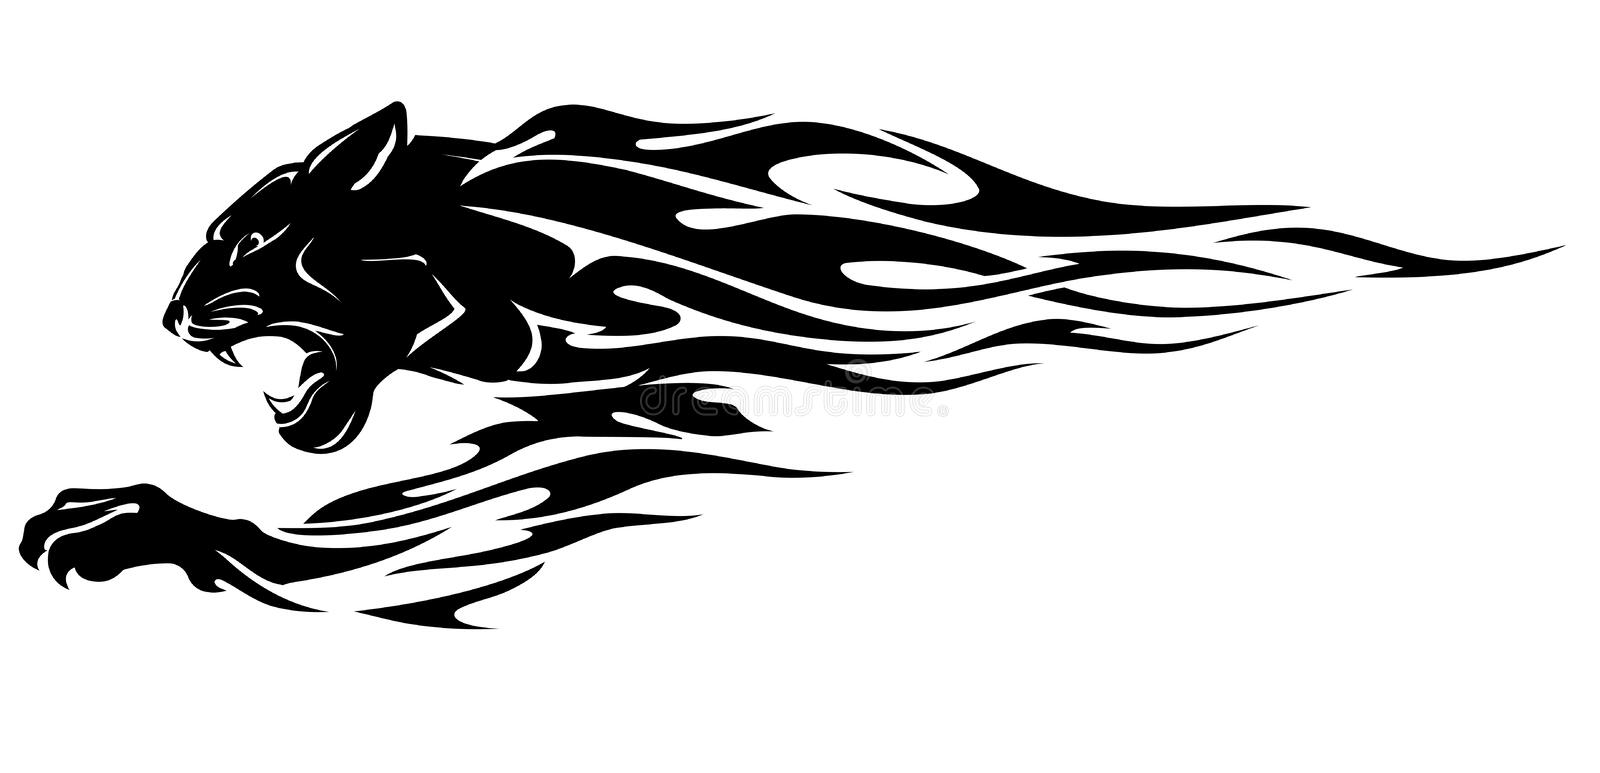 Black Panther Head Abstract Flame Stock Vector Illustration Of Large Silhouette 168794407